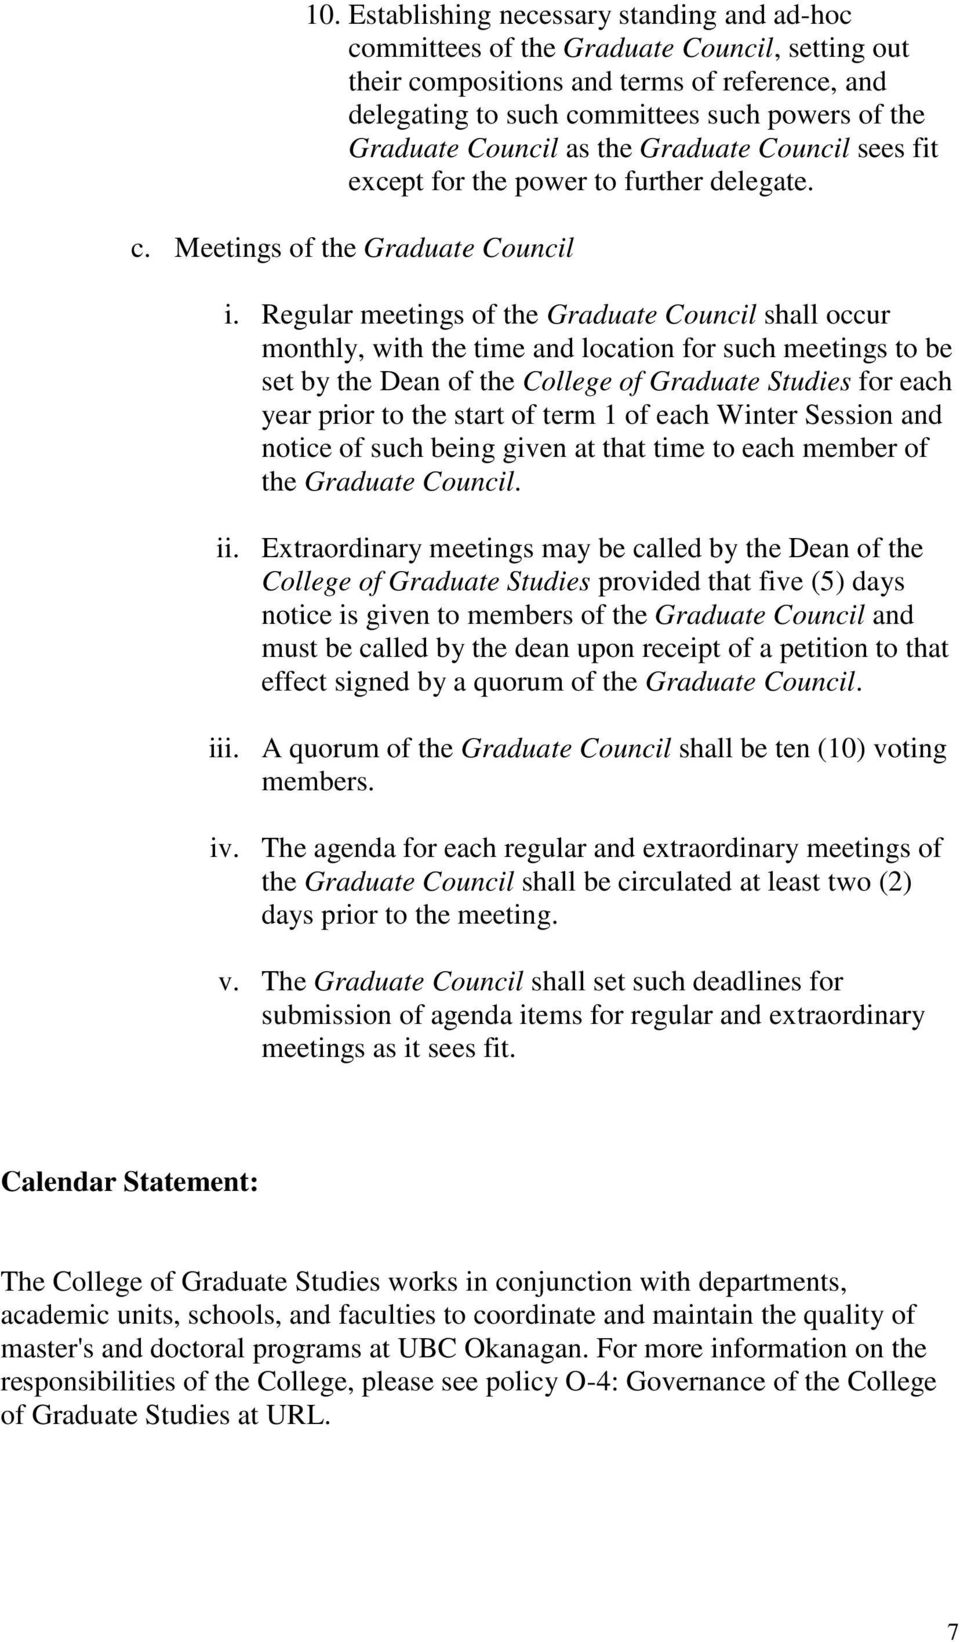 Regular meetings of the Graduate Council shall occur monthly, with the time and location for such meetings to be set by the Dean of the College of Graduate Studies for each year prior to the start of